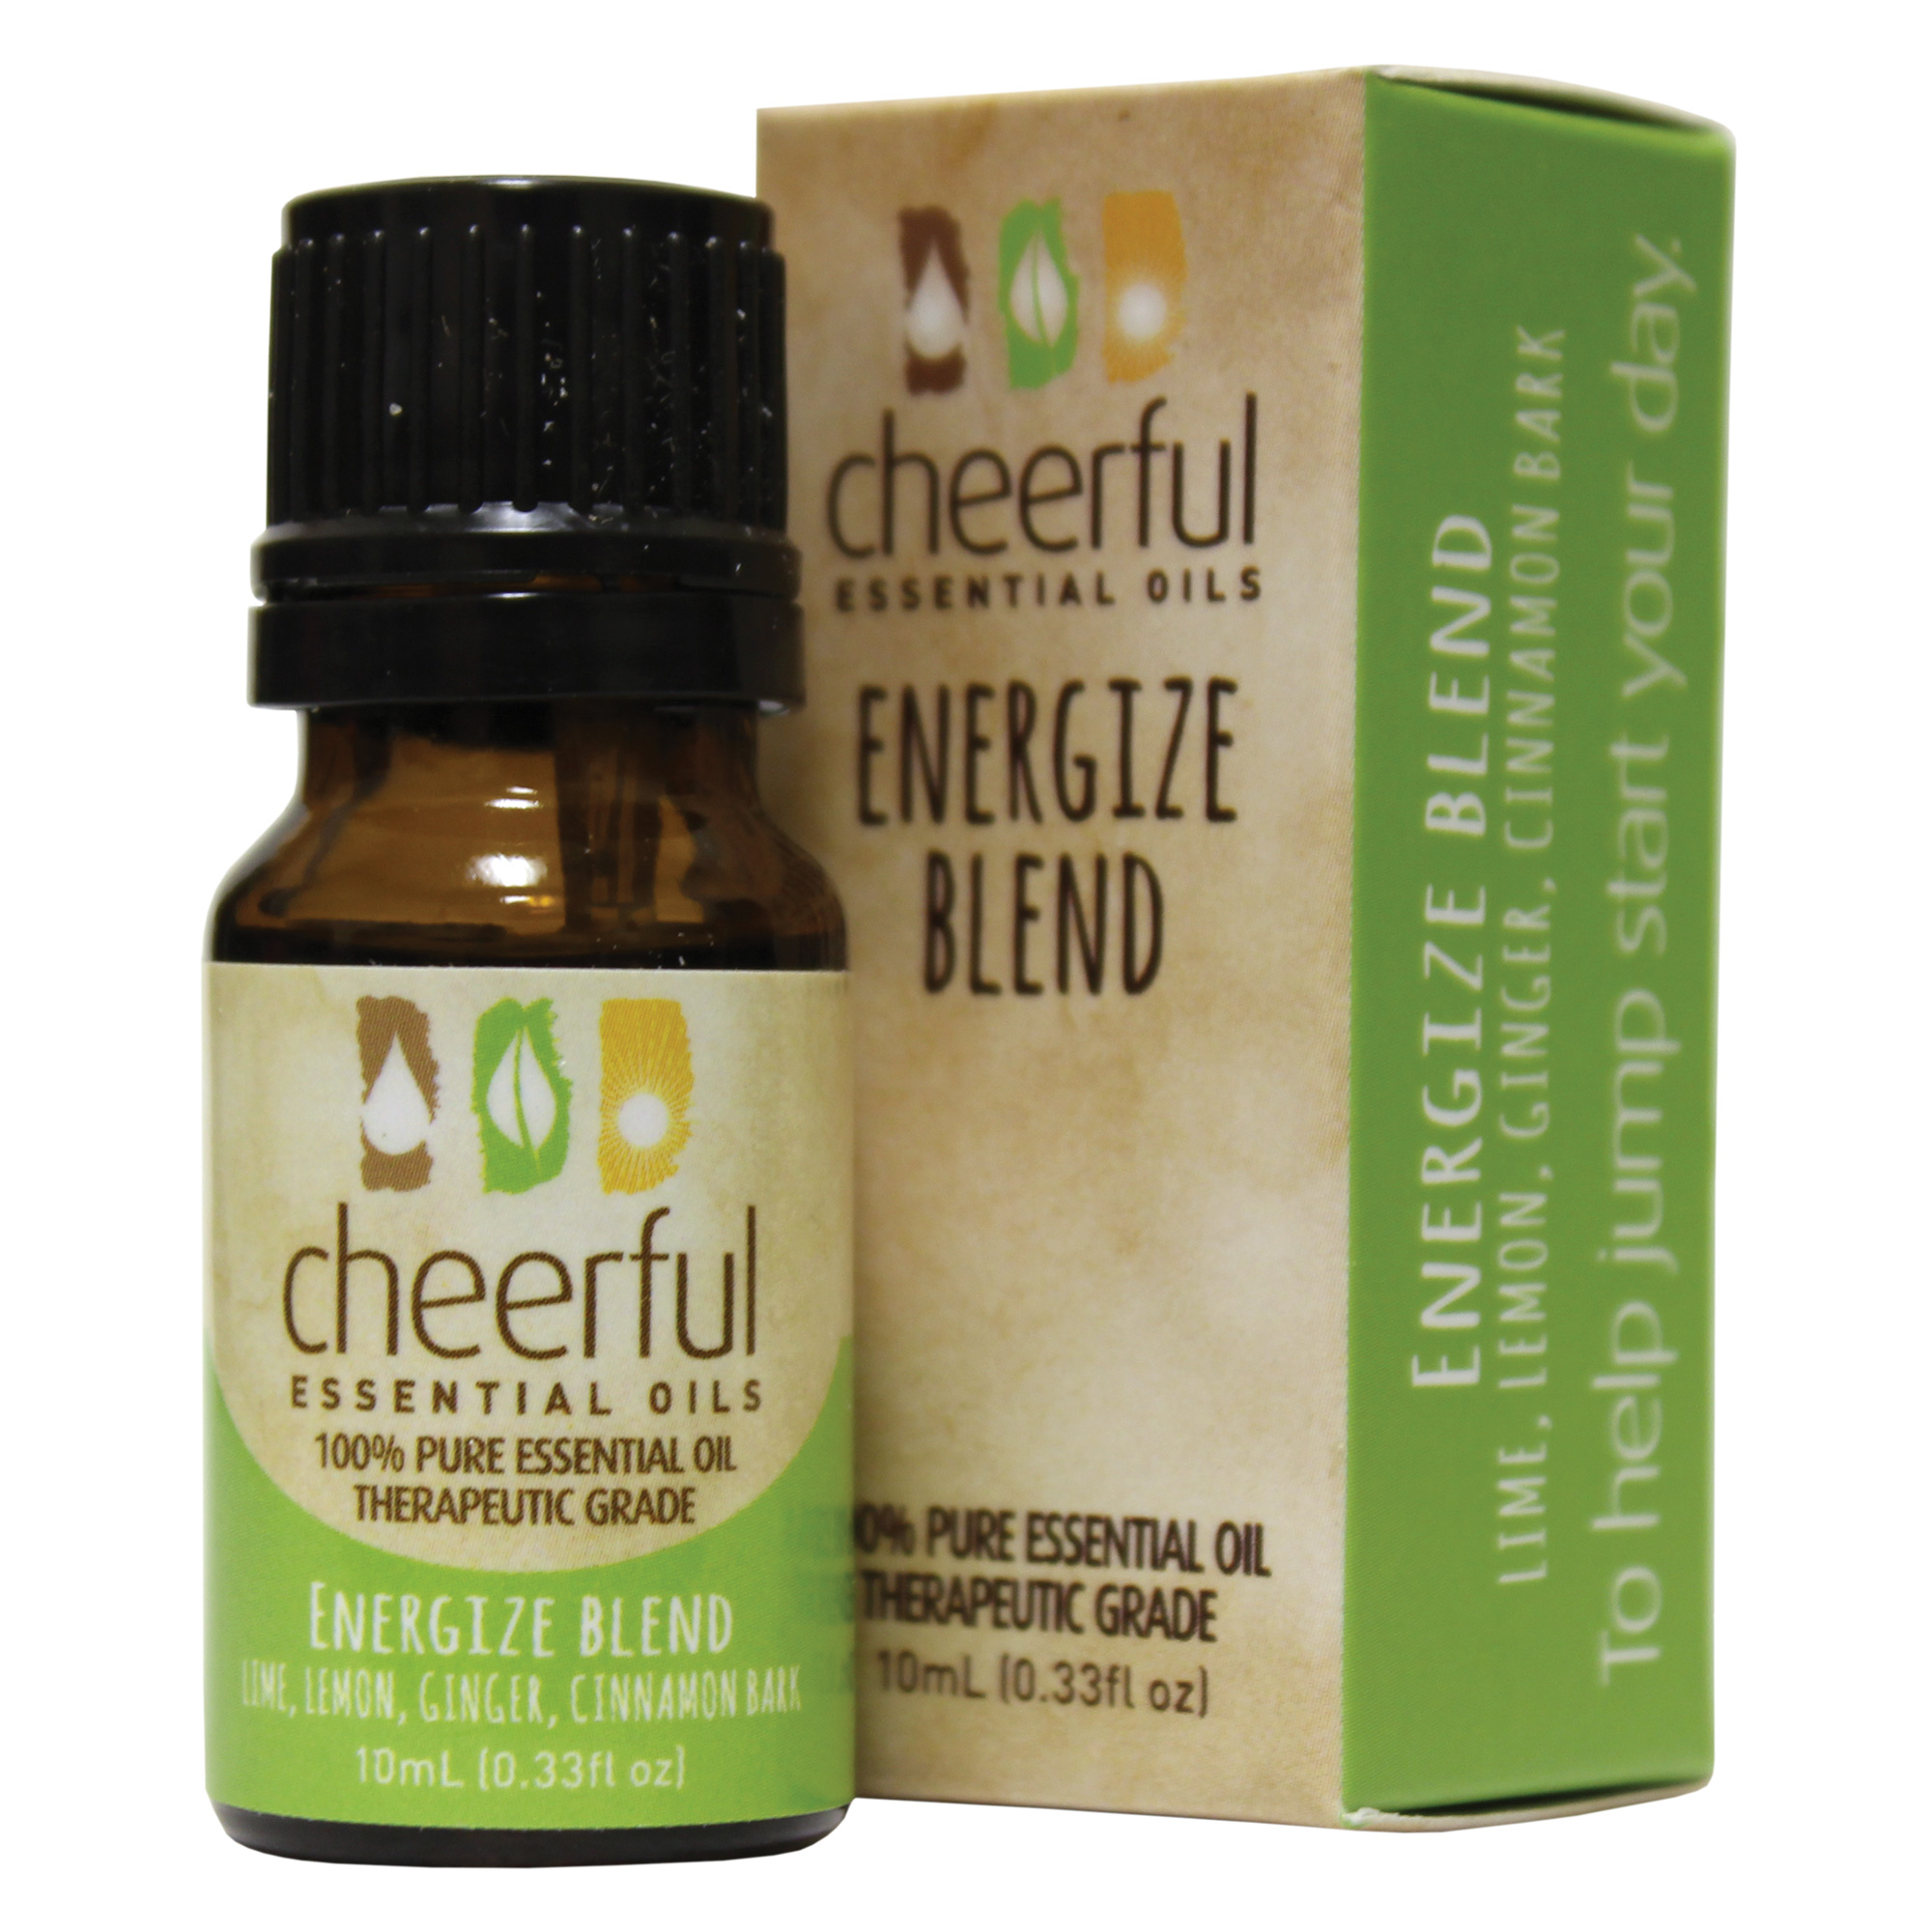 ENERGIZE BLEND ESSENTIAL OIL 10 ML UPC# 674623018249